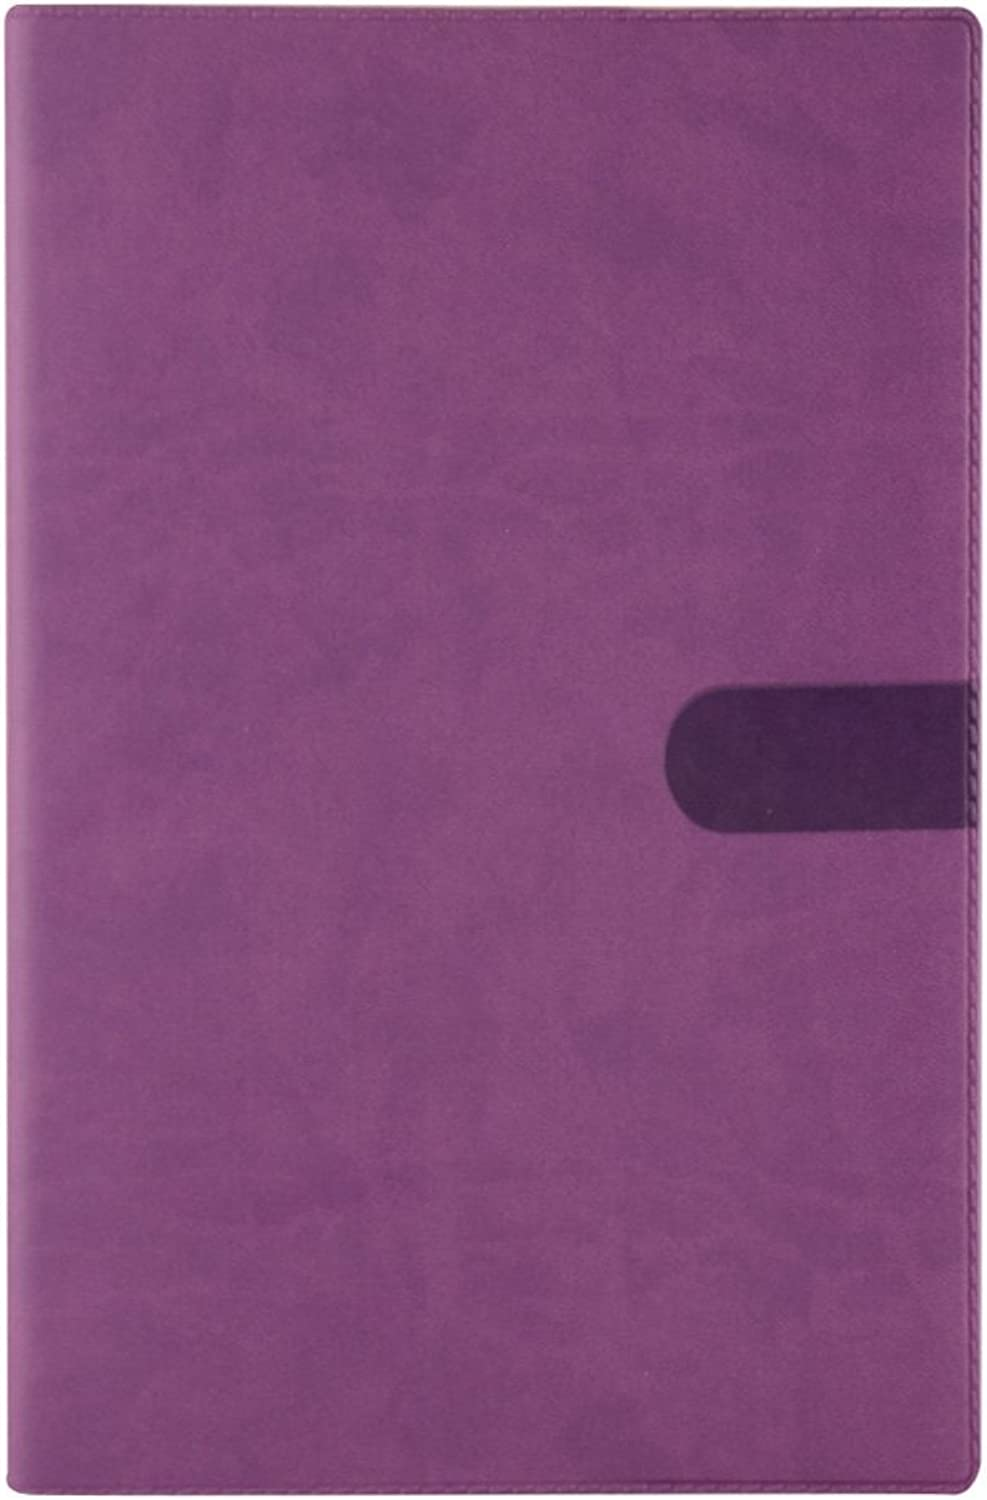 Quo Vadis Scholar  55 Academic Planner, Planner, Planner, Texas Cover, lila Faux-Suede, 12 Months, August 2018 to July 2019, Weekly, 6.25 by 9.38 inches B07CRQ9TRJ  | Flagship-Store  a38aff